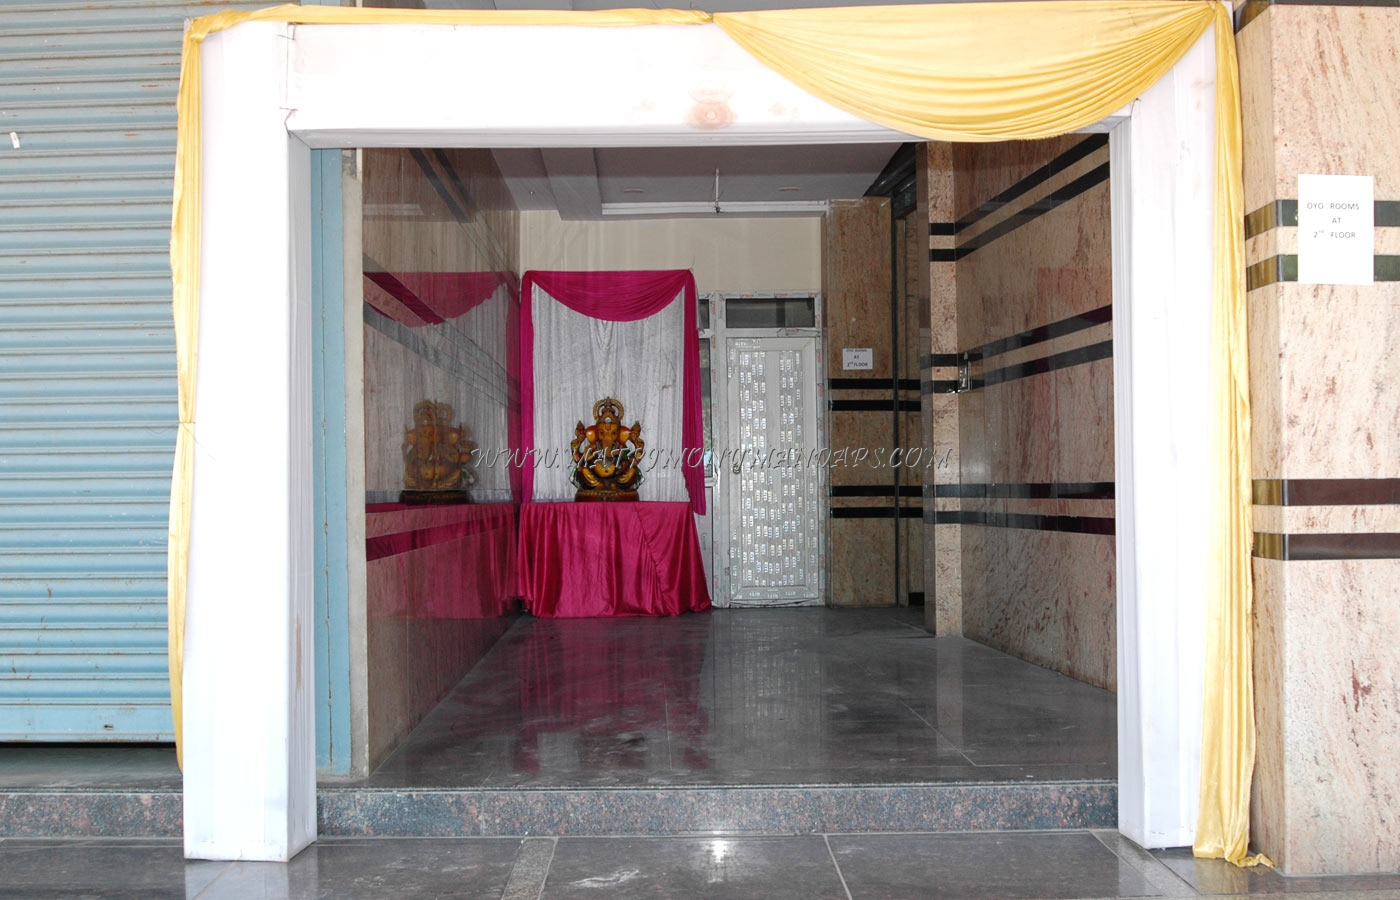 Find the availability of the Hotel Bhadras Grand Hall 3 (A/C) in Ramanthapur, Hyderabad and avail special offers